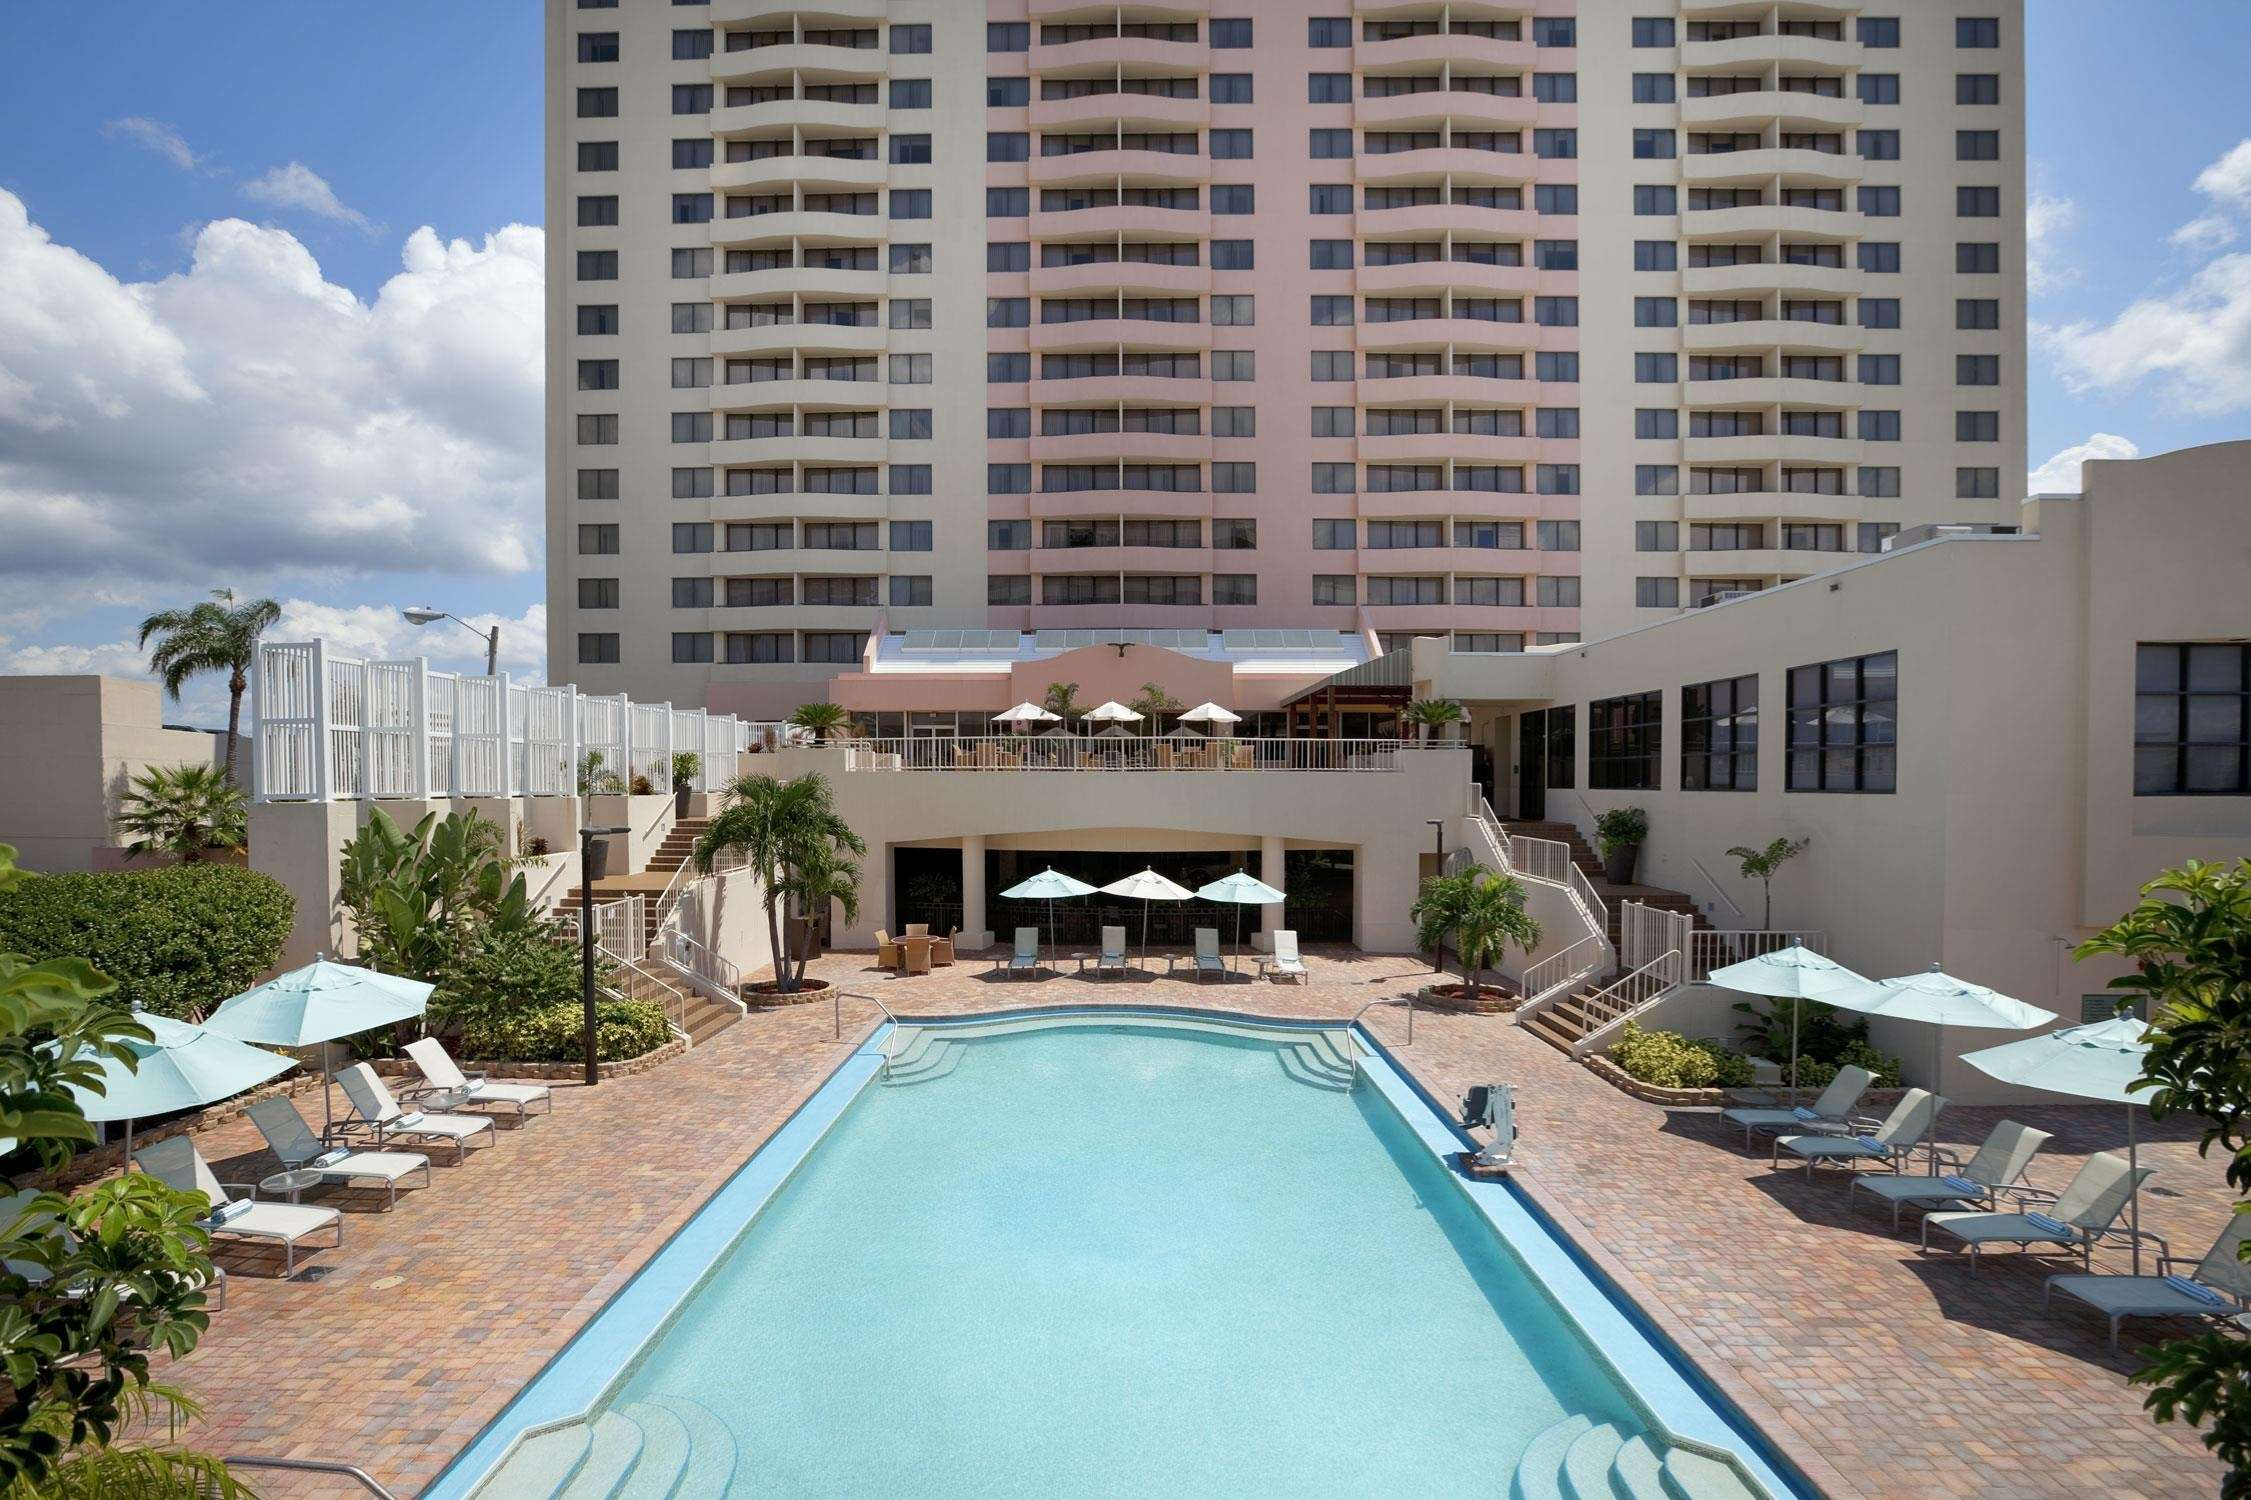 Embassy Suites by Hilton Tampa Airport Westshore image 10